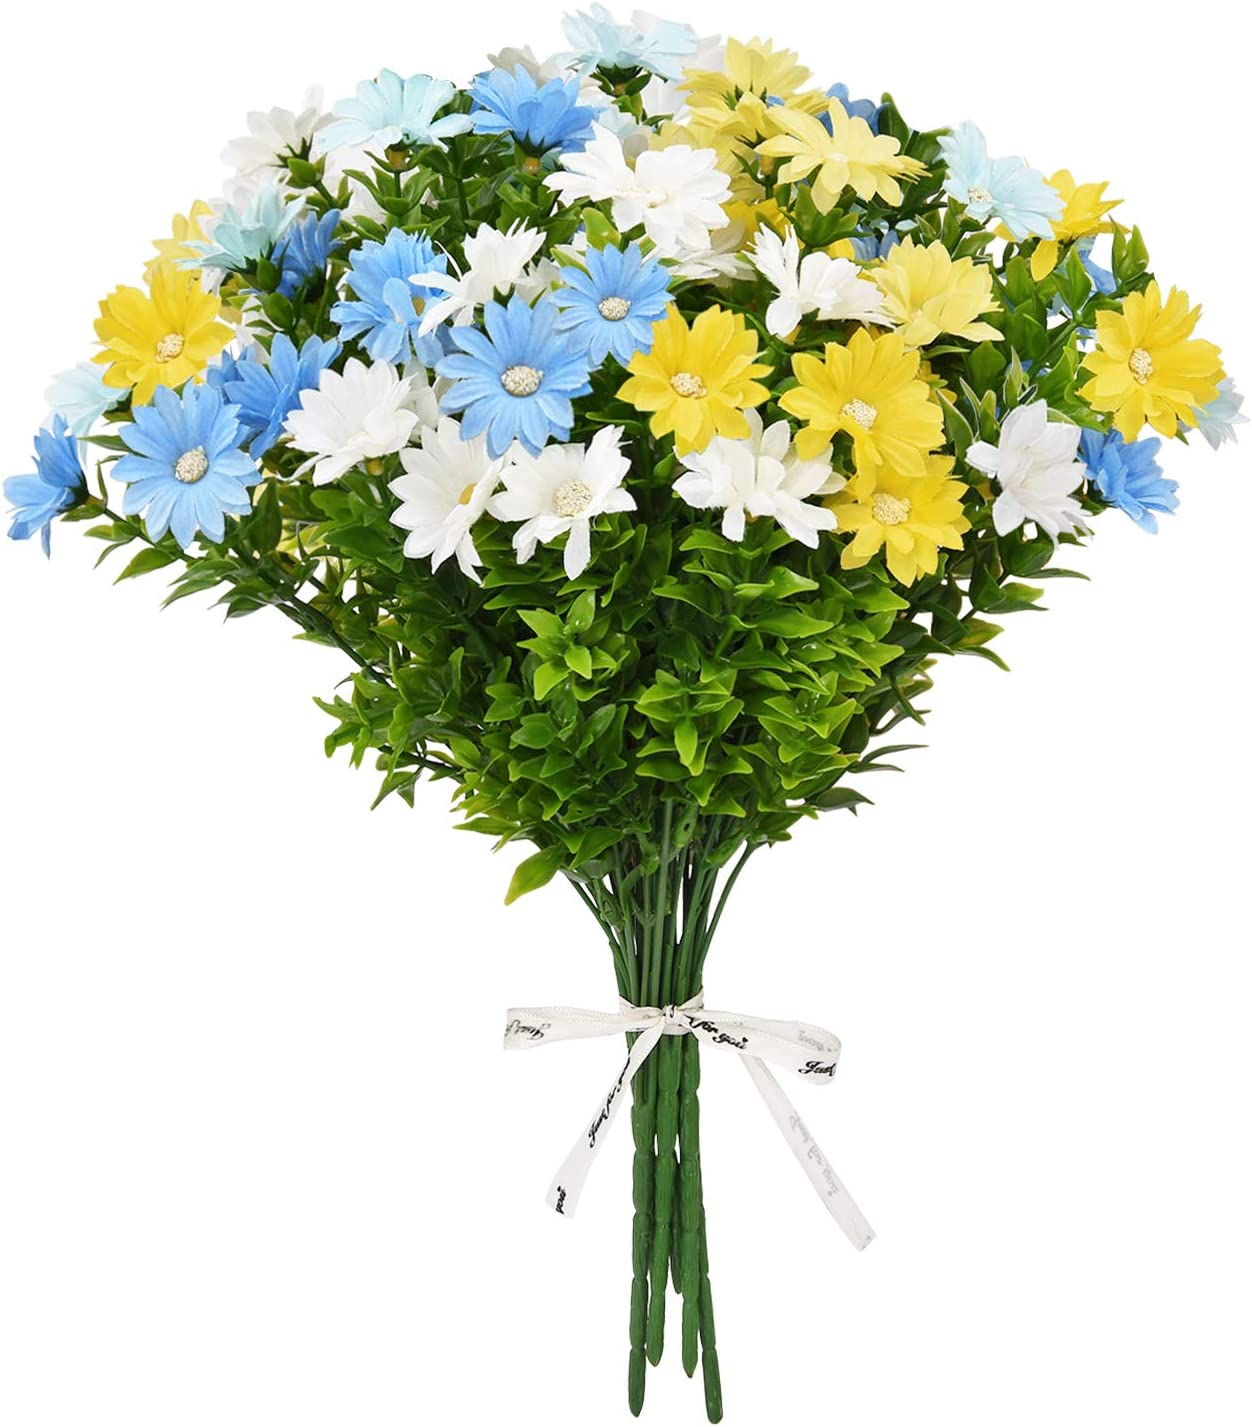 Shiny Flower 6 Pcs Artificial Flowers Silk Daisy Artificial Daisy Flowers Fake Colorful Daisy Plant Bouquet for Home Garden Porch Table Centerpieces Wedding Decor, Yellow, Blue, White